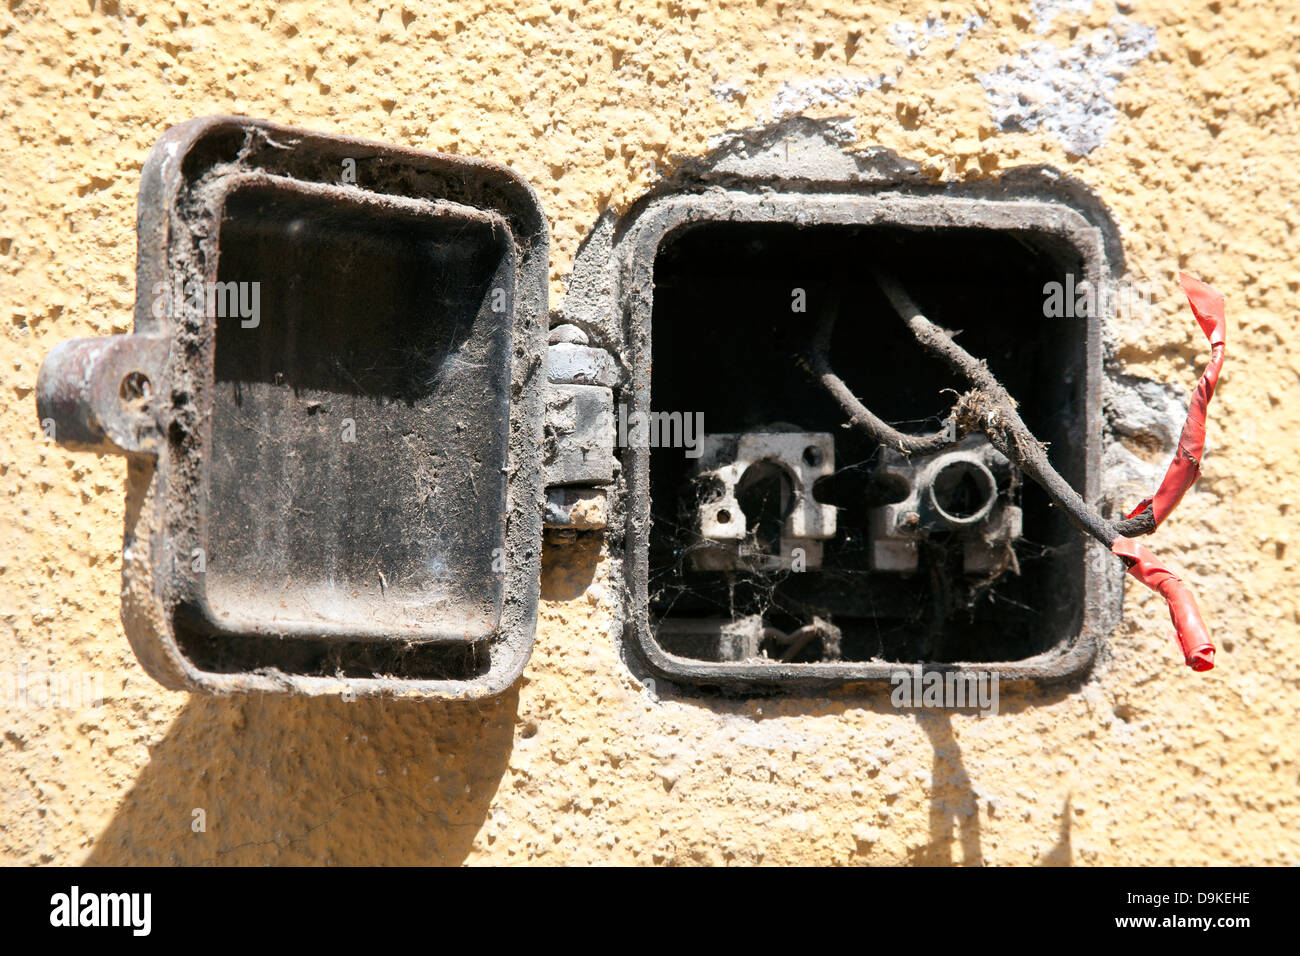 Electrical wires exposed on an open fuse box set into a wall, Budapest  Hungary -